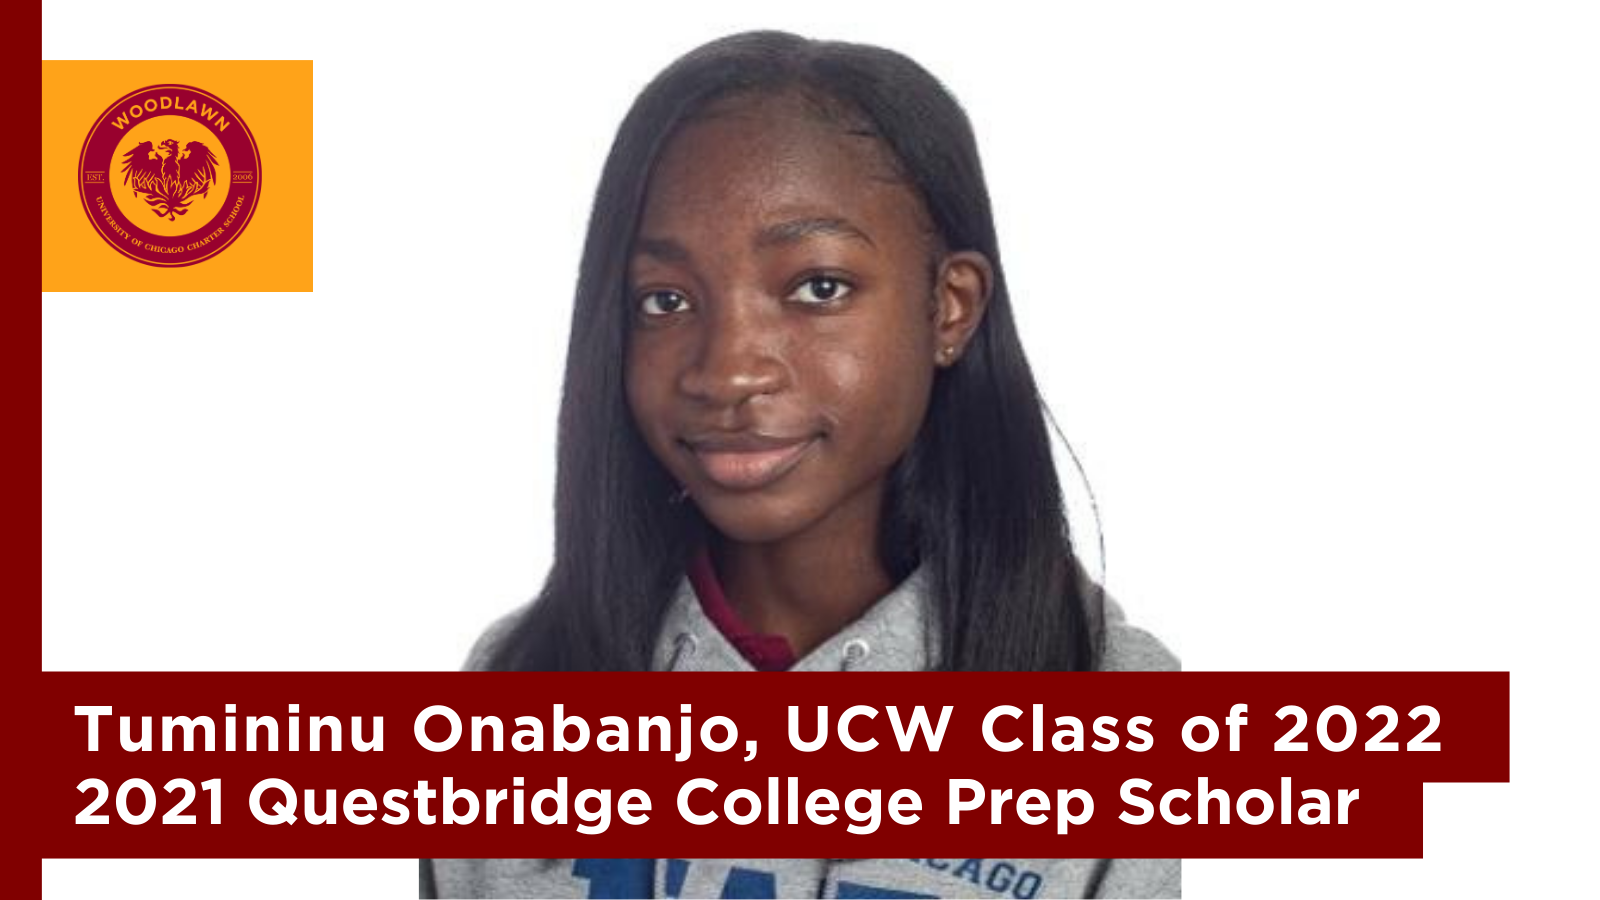 Headshot of Tumininu Onabanjo, a young Black woman with shoulder length hair and wearing a UCW polo and hoodie.